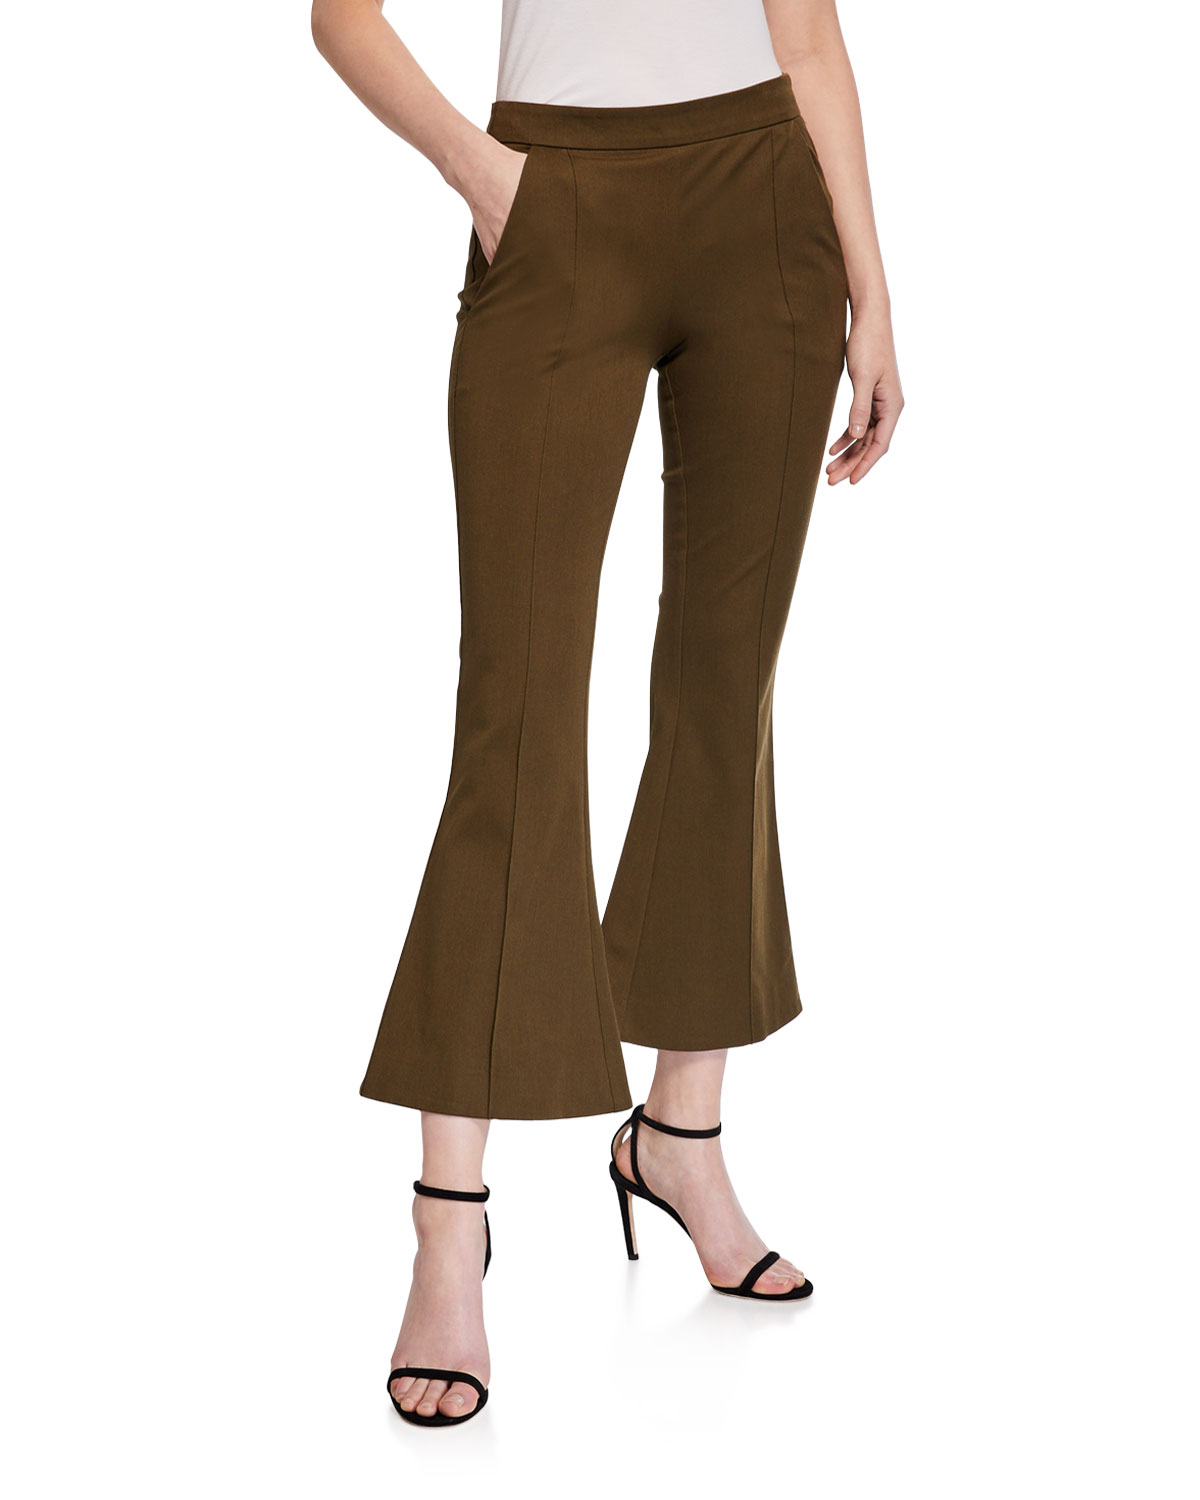 Maggie Marilyn Pants MEET ME AT SEVEN CROPPED FLARE PANTS